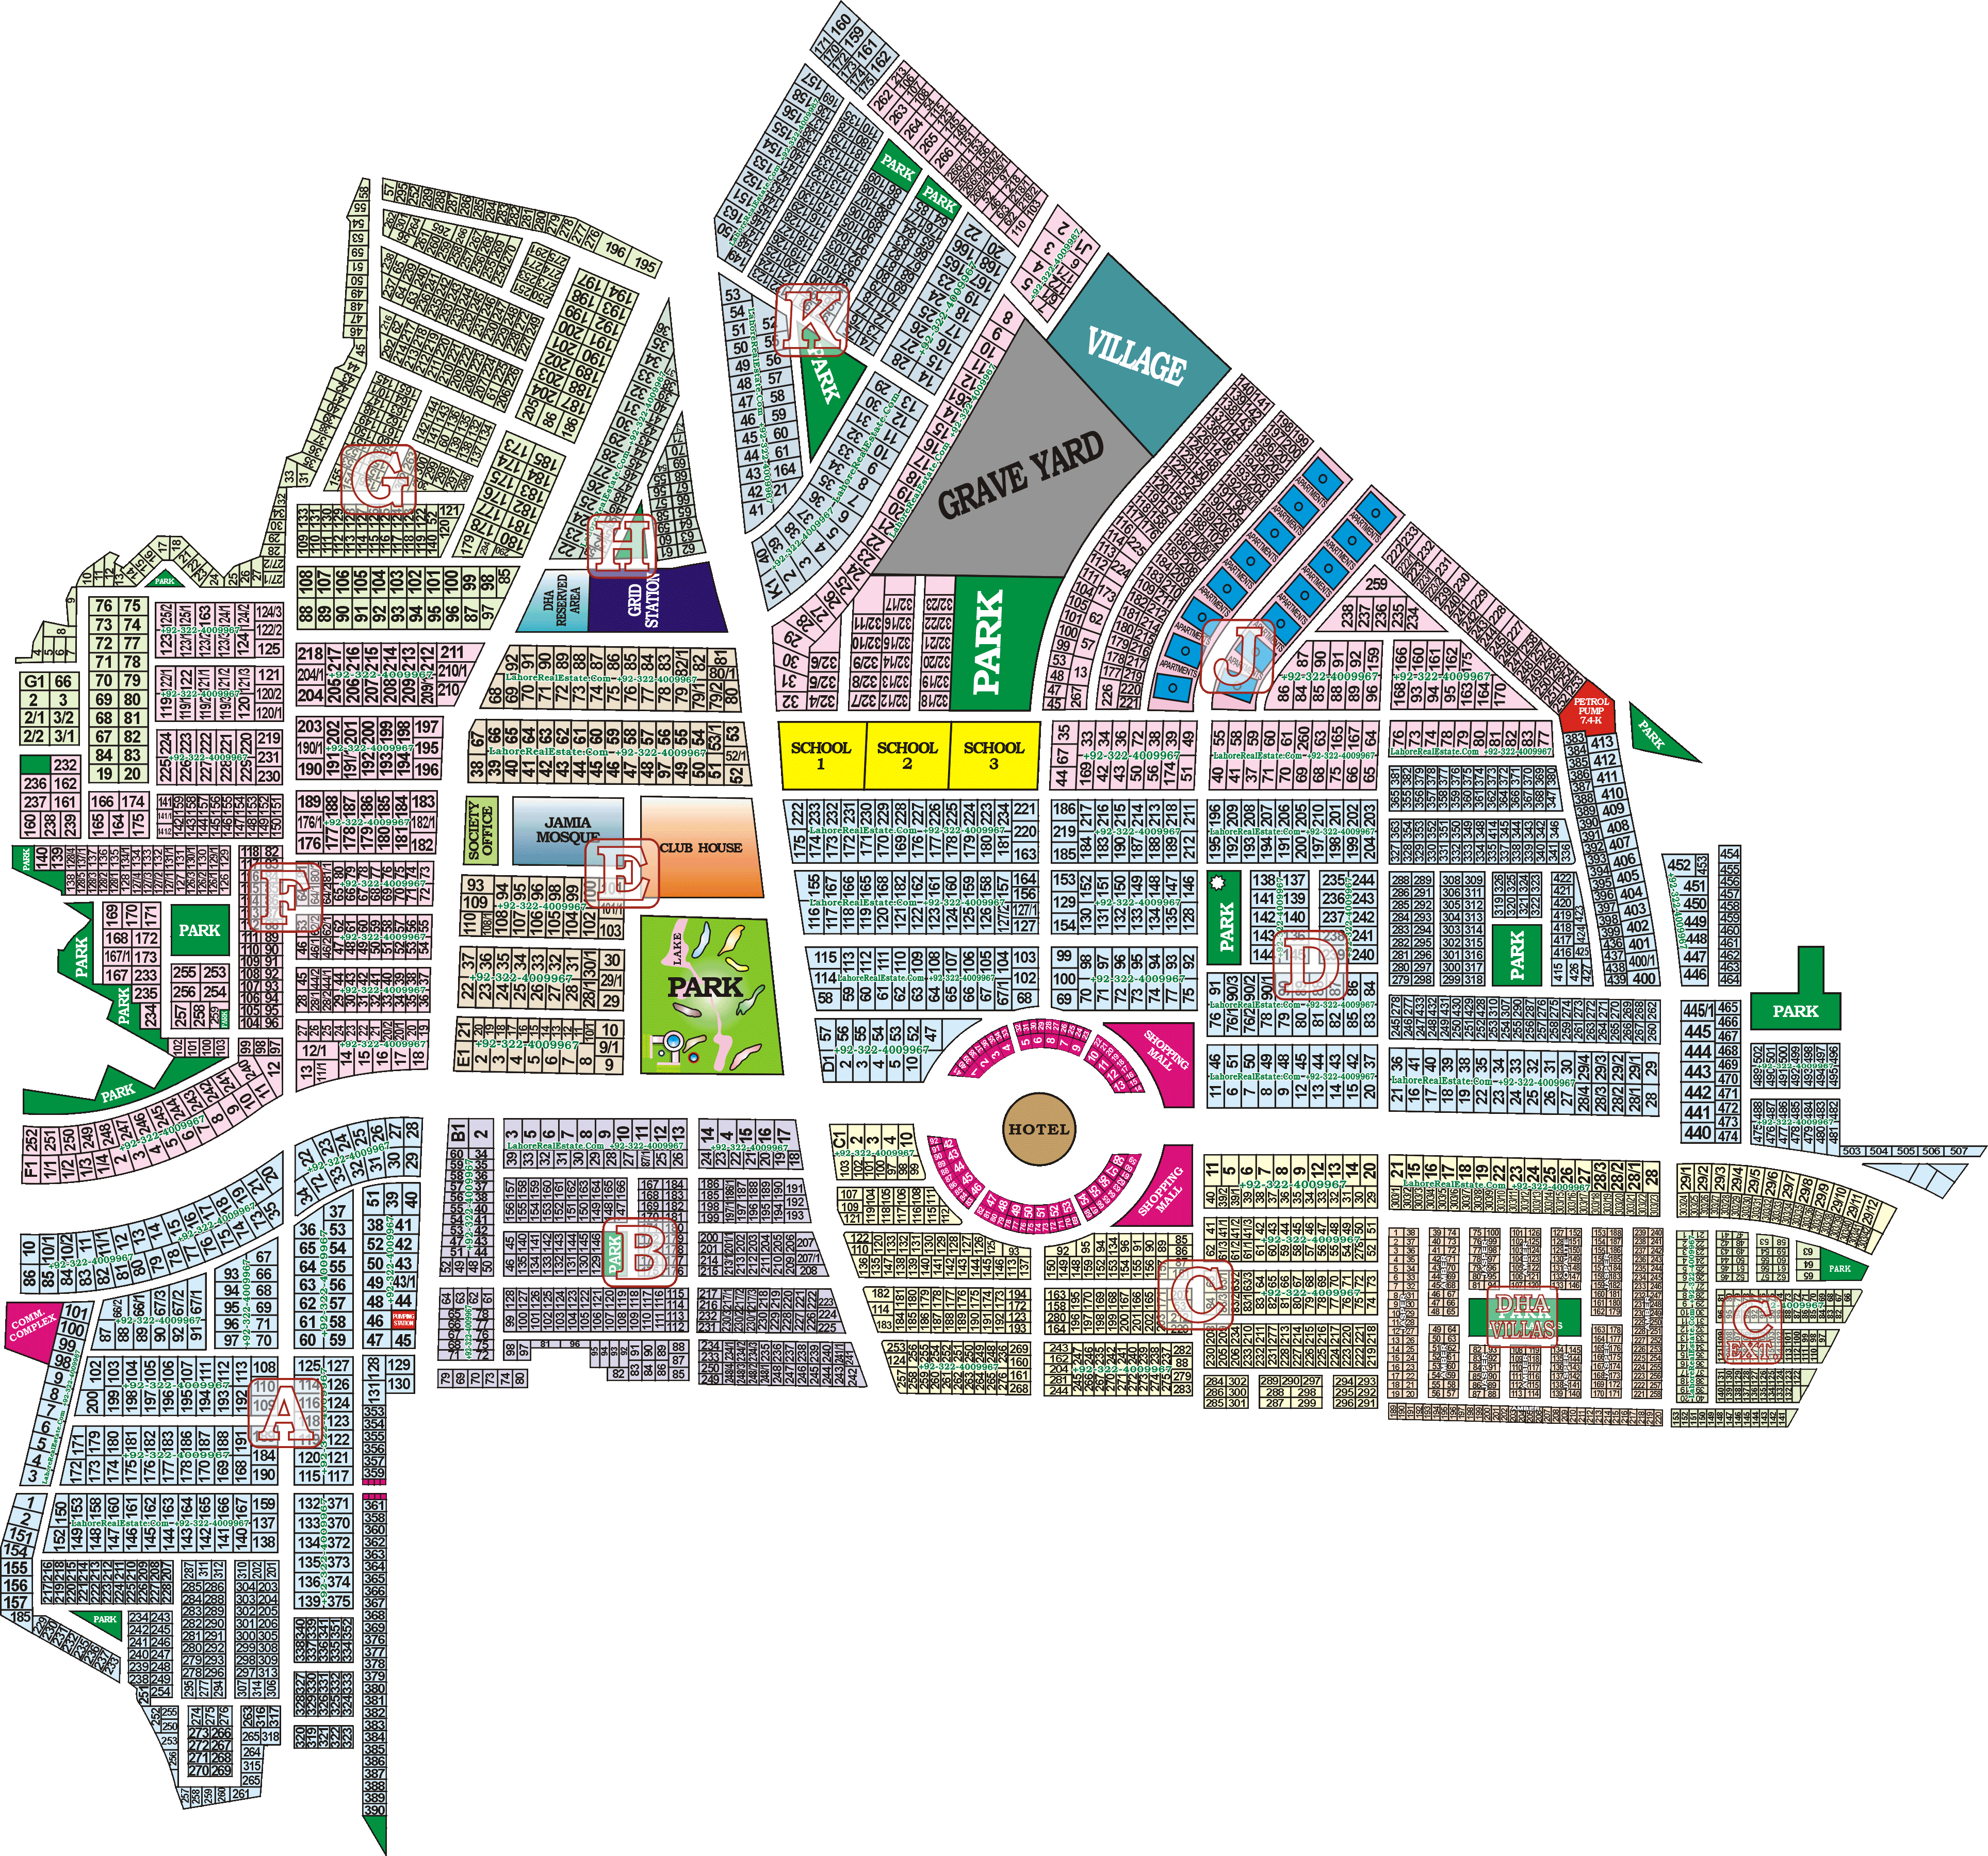 dha lahore subdivisions